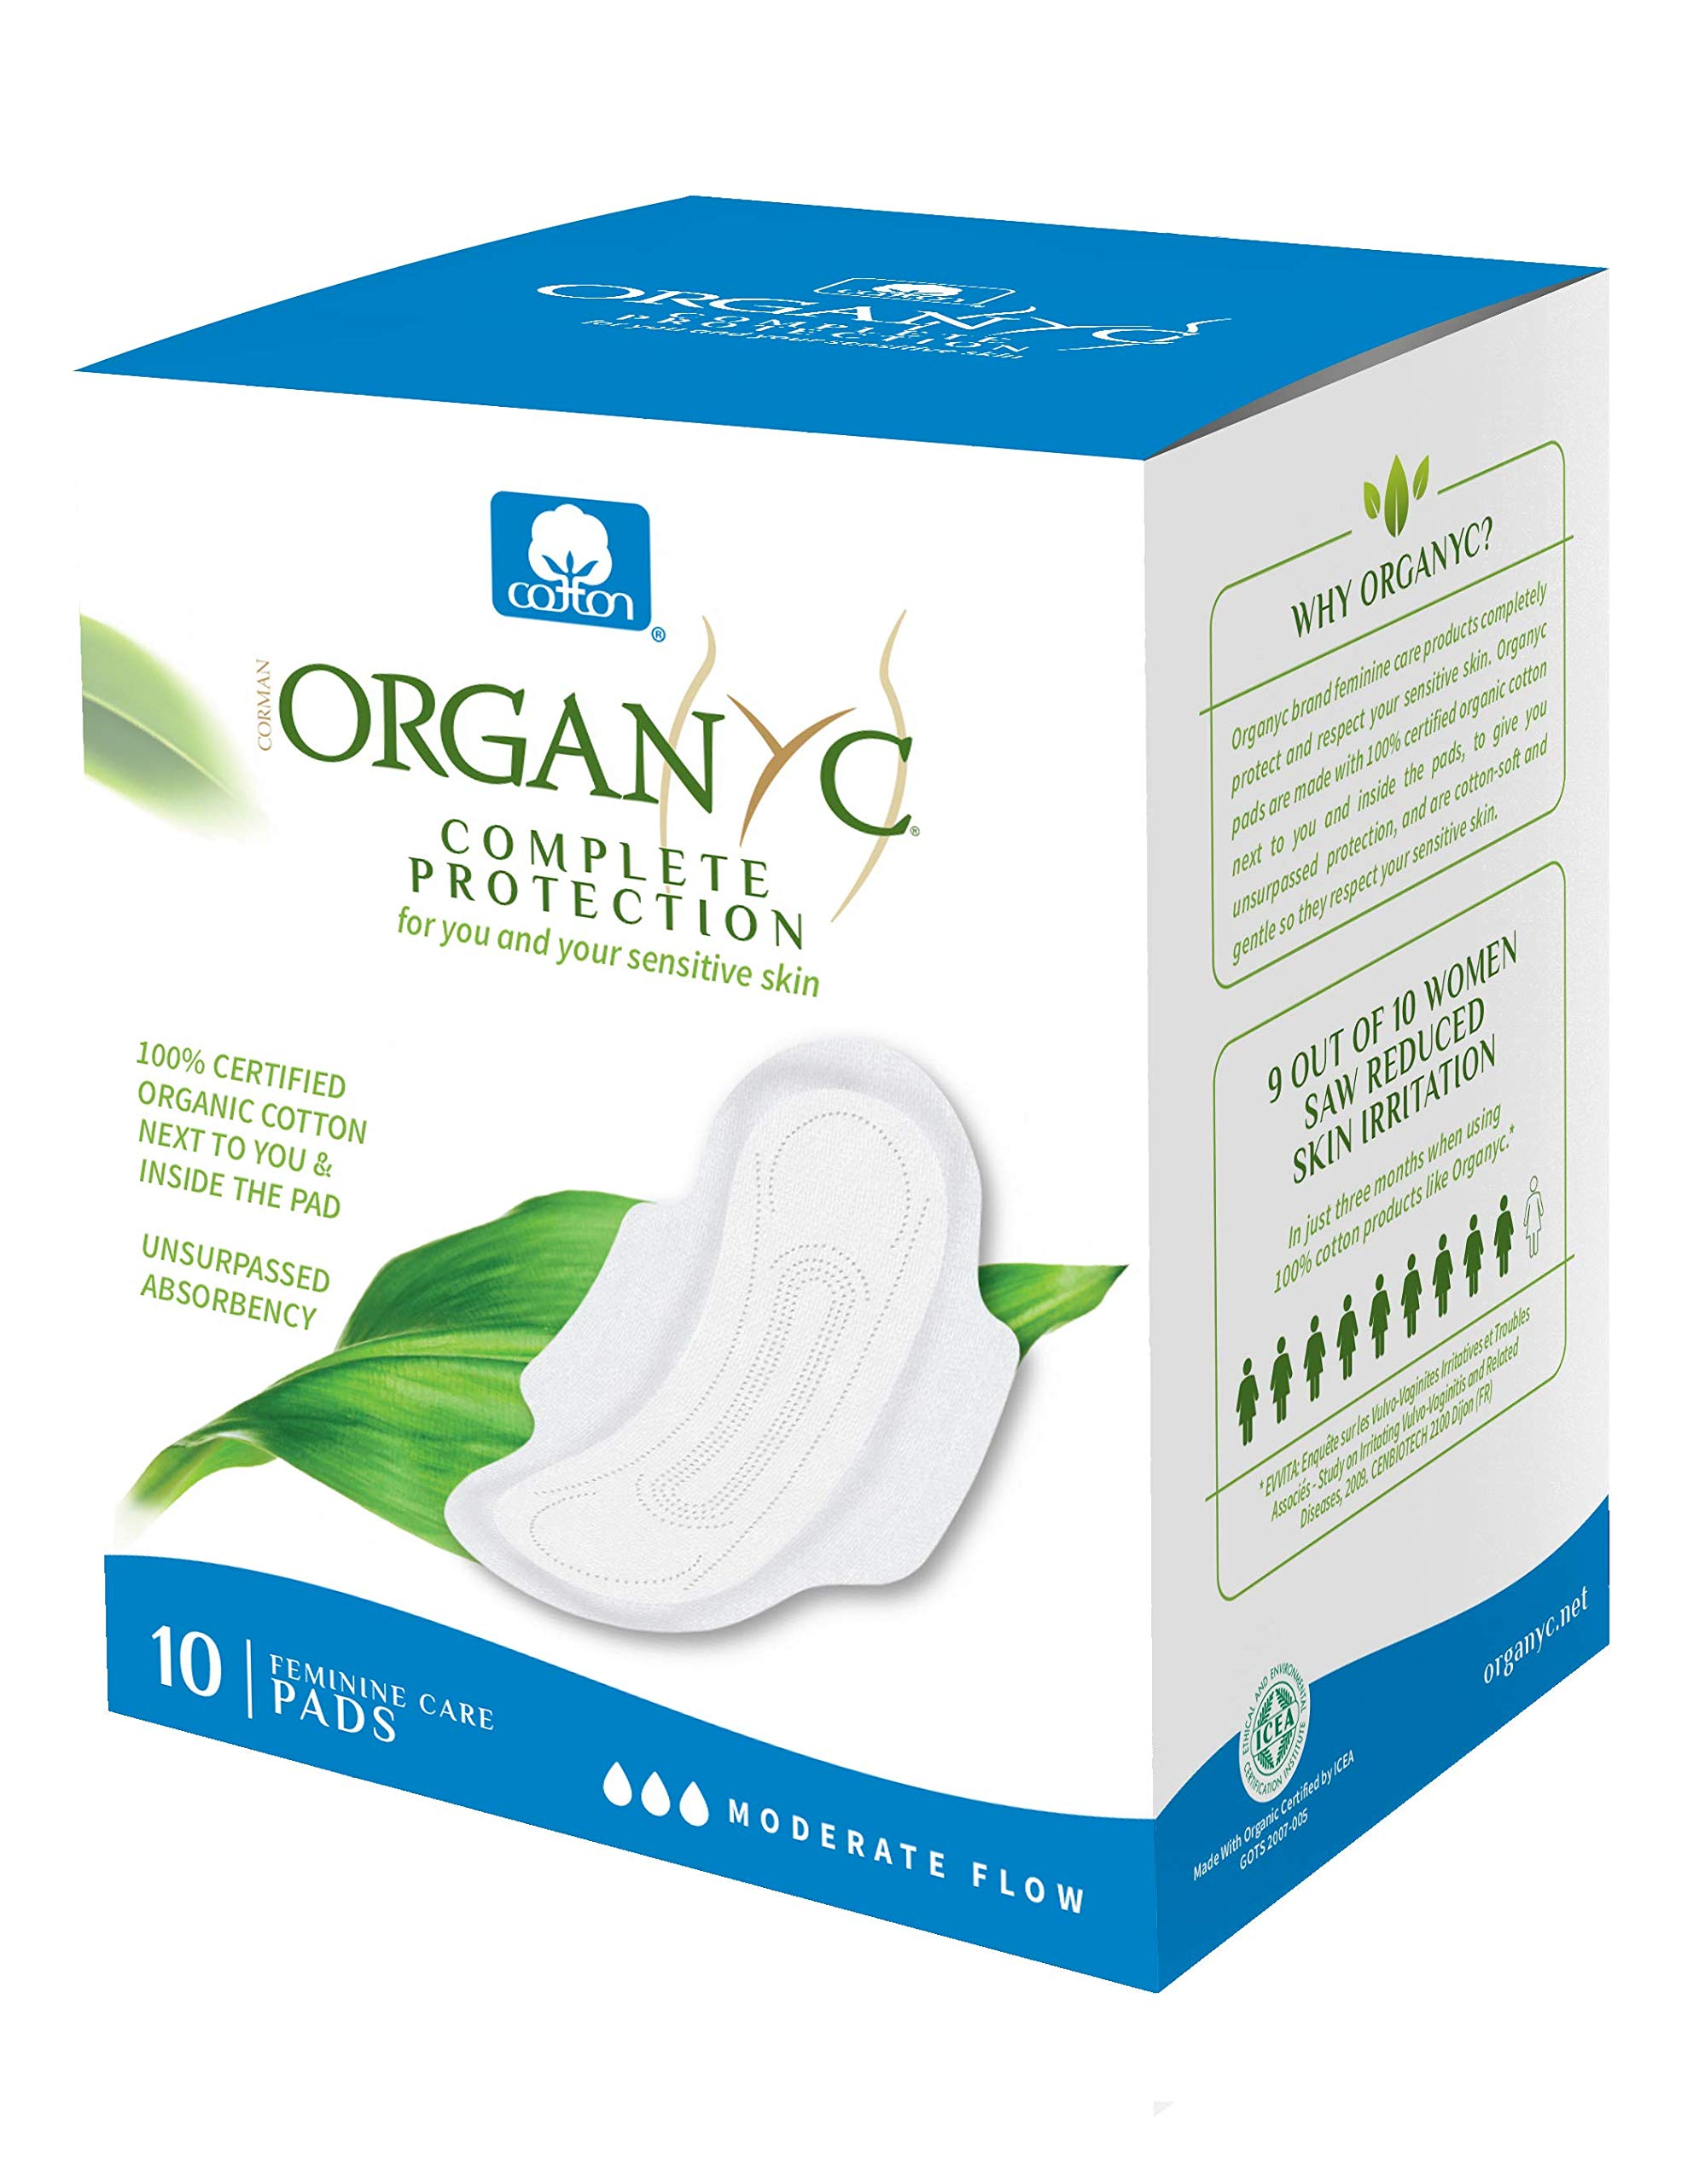 Organyc 100% Certified Organic Cotton Feminine Pads, Moderate Flow, 10 Count product image